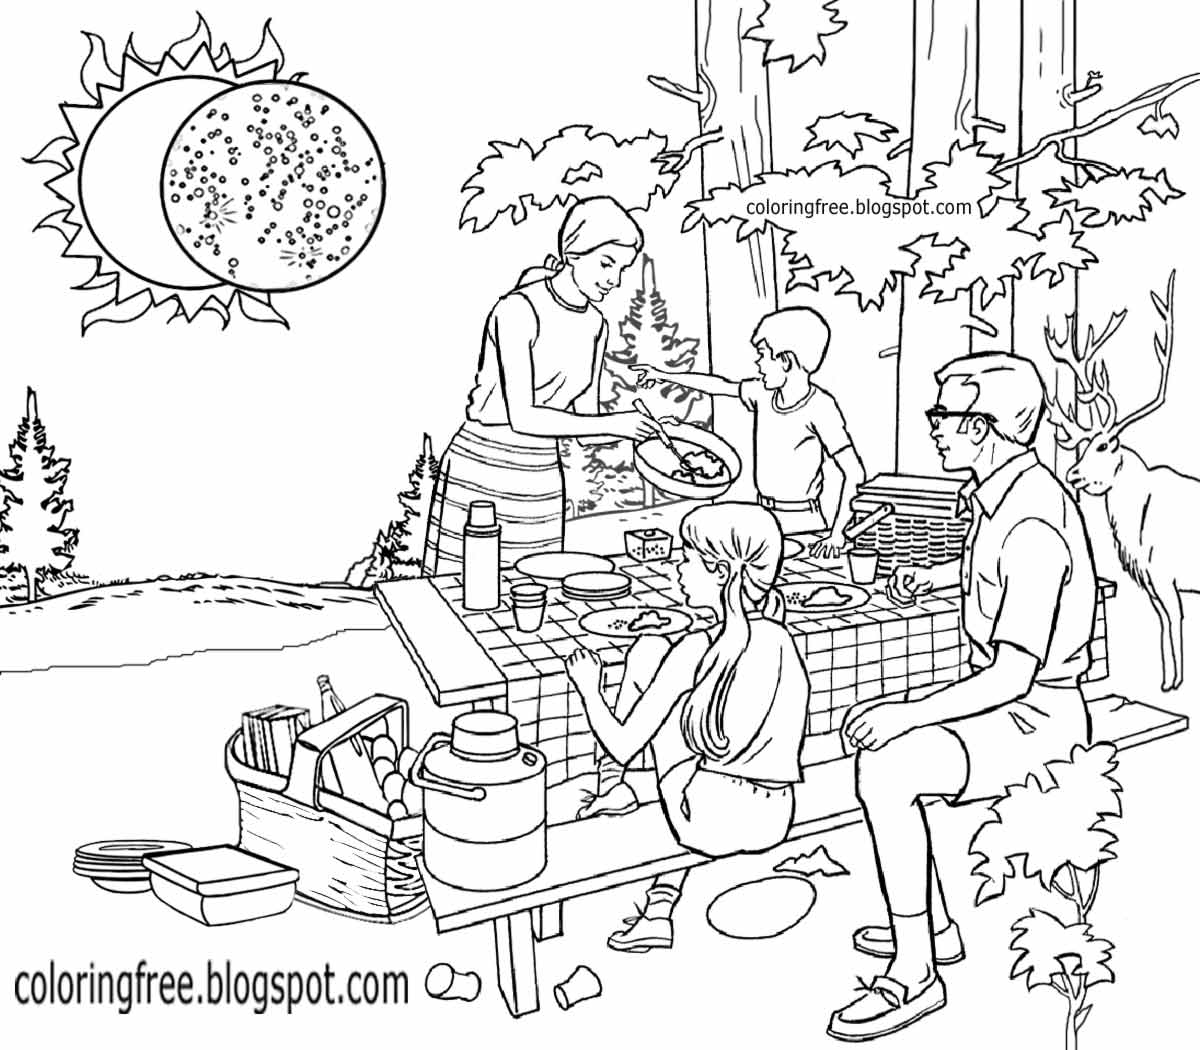 solar eclipse coloring pages - photo#9